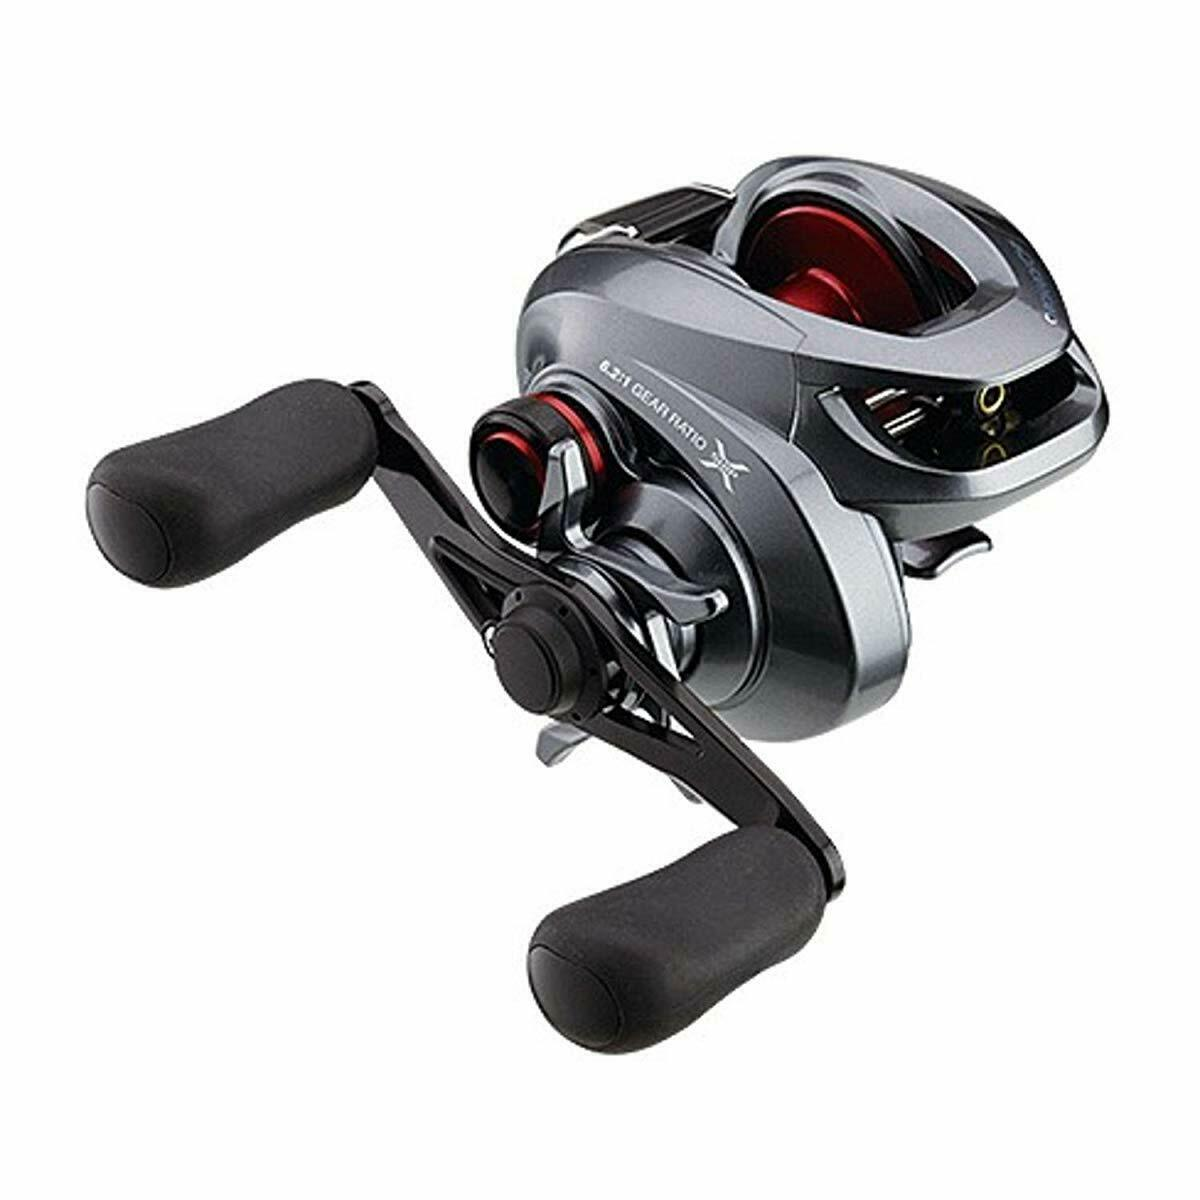 Shiuomoo CHRONARCH CI4 150 Right Heed Bait Casting pesca Reel nuovo From JAPAN